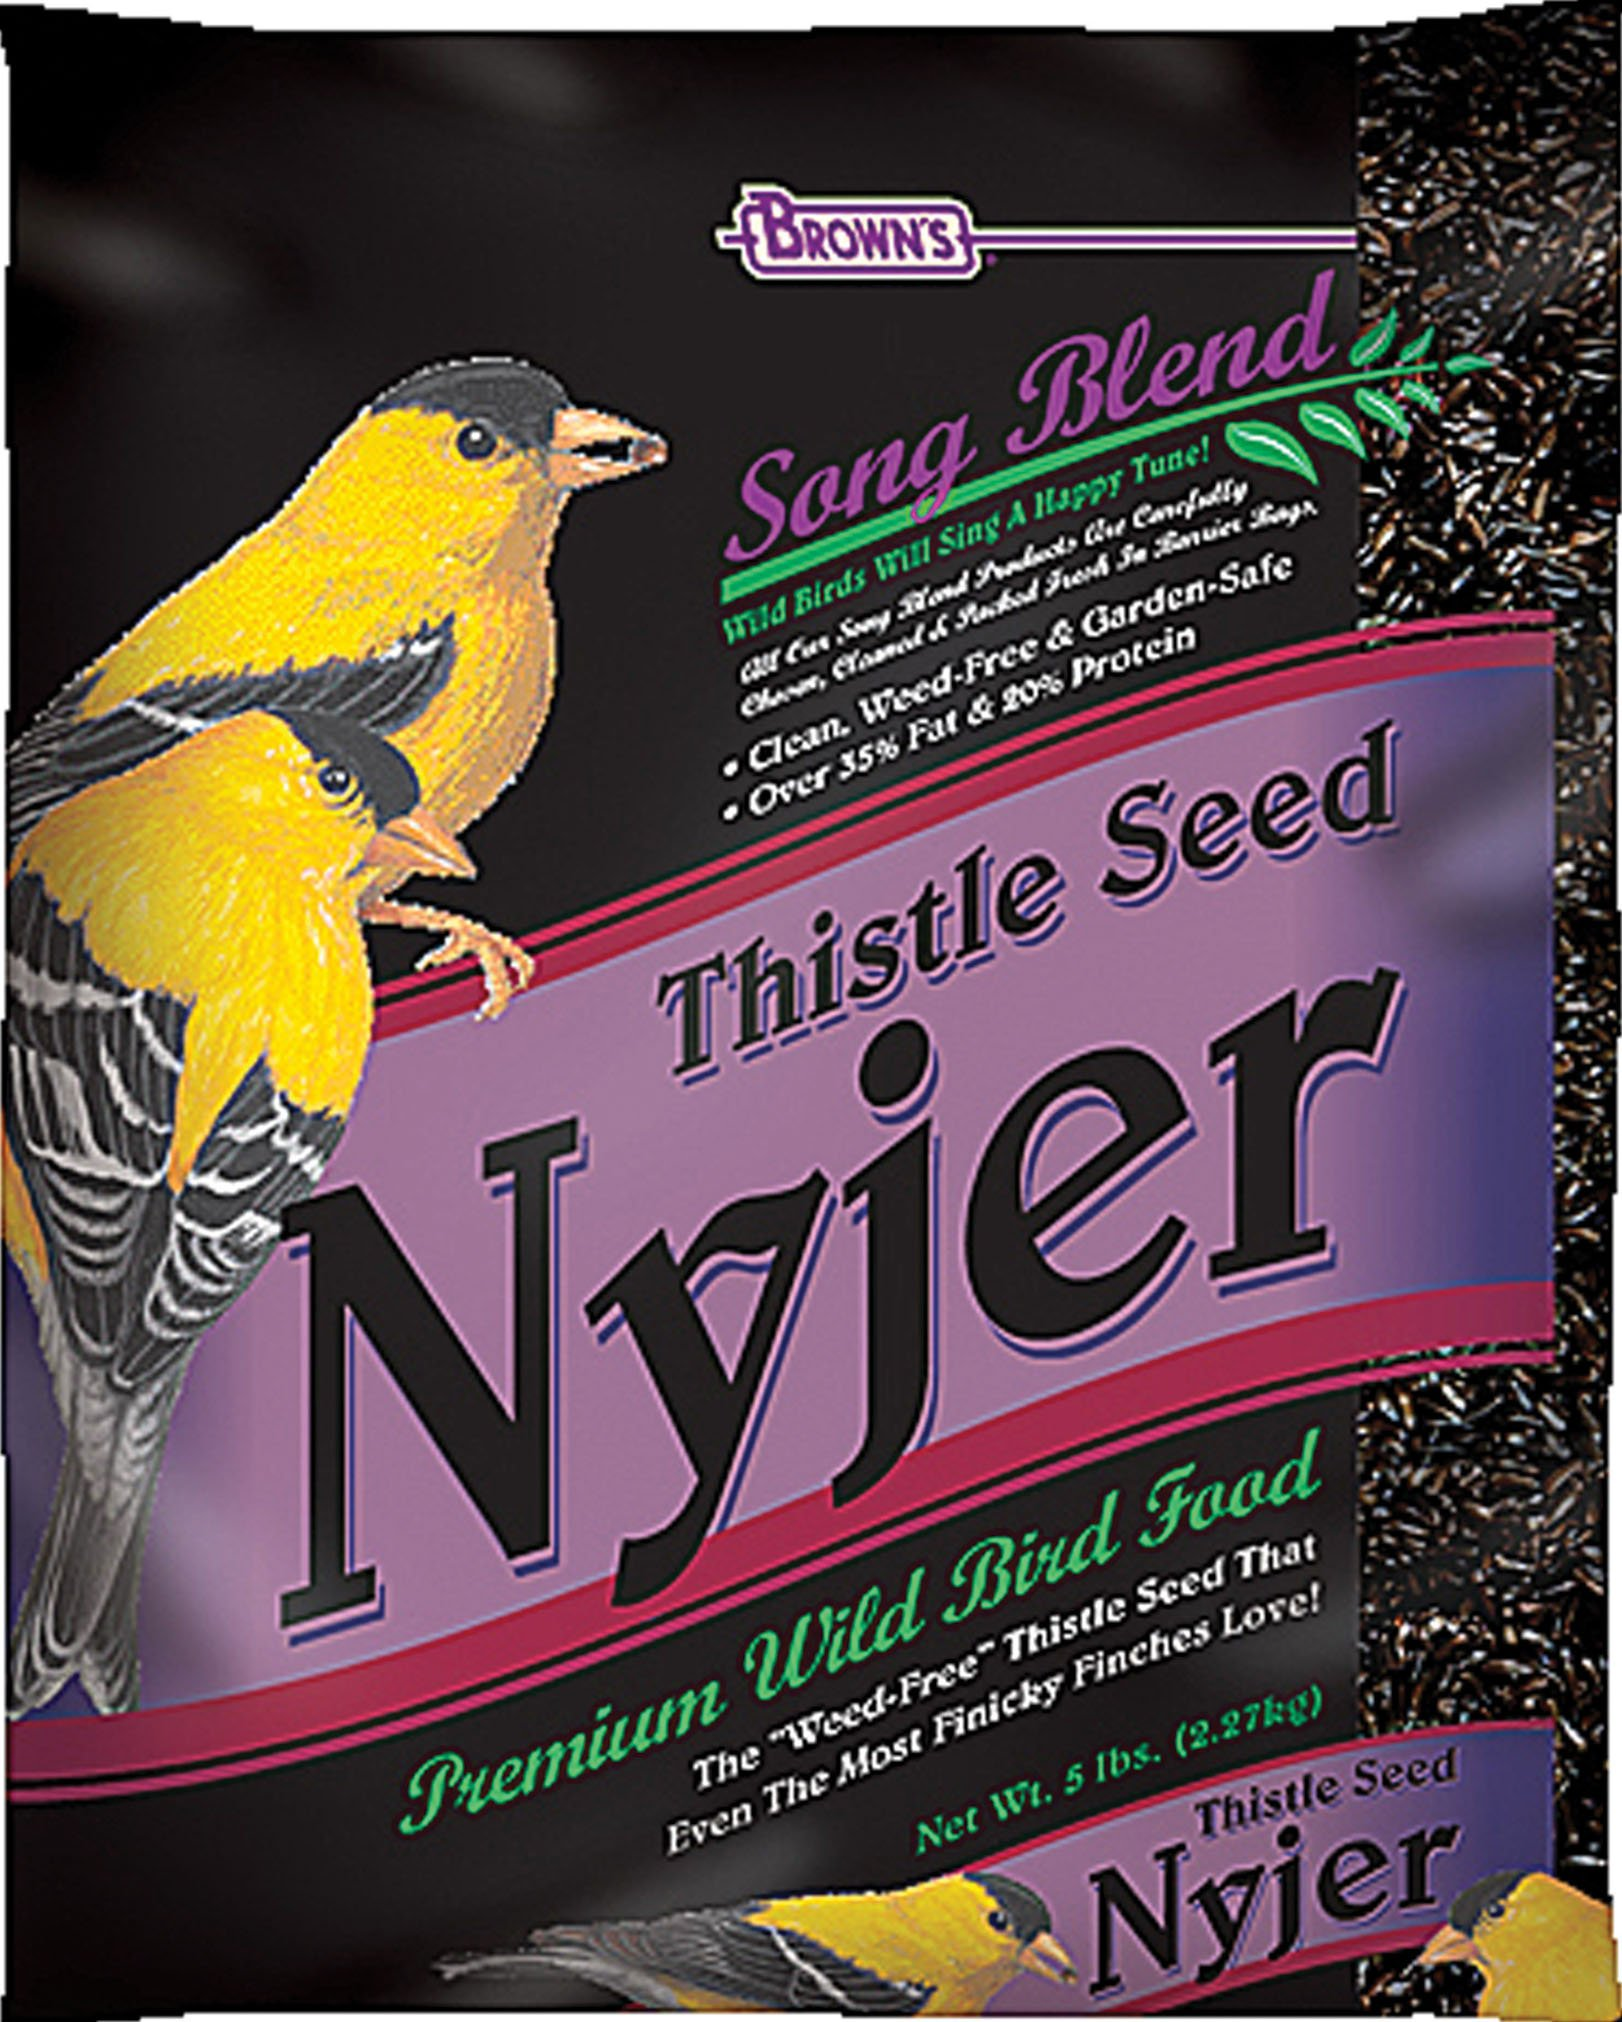 F.M. Brown's Song Blend Nyjer Thistle Seed for Pets, 2-Pound by F.M. Brown's